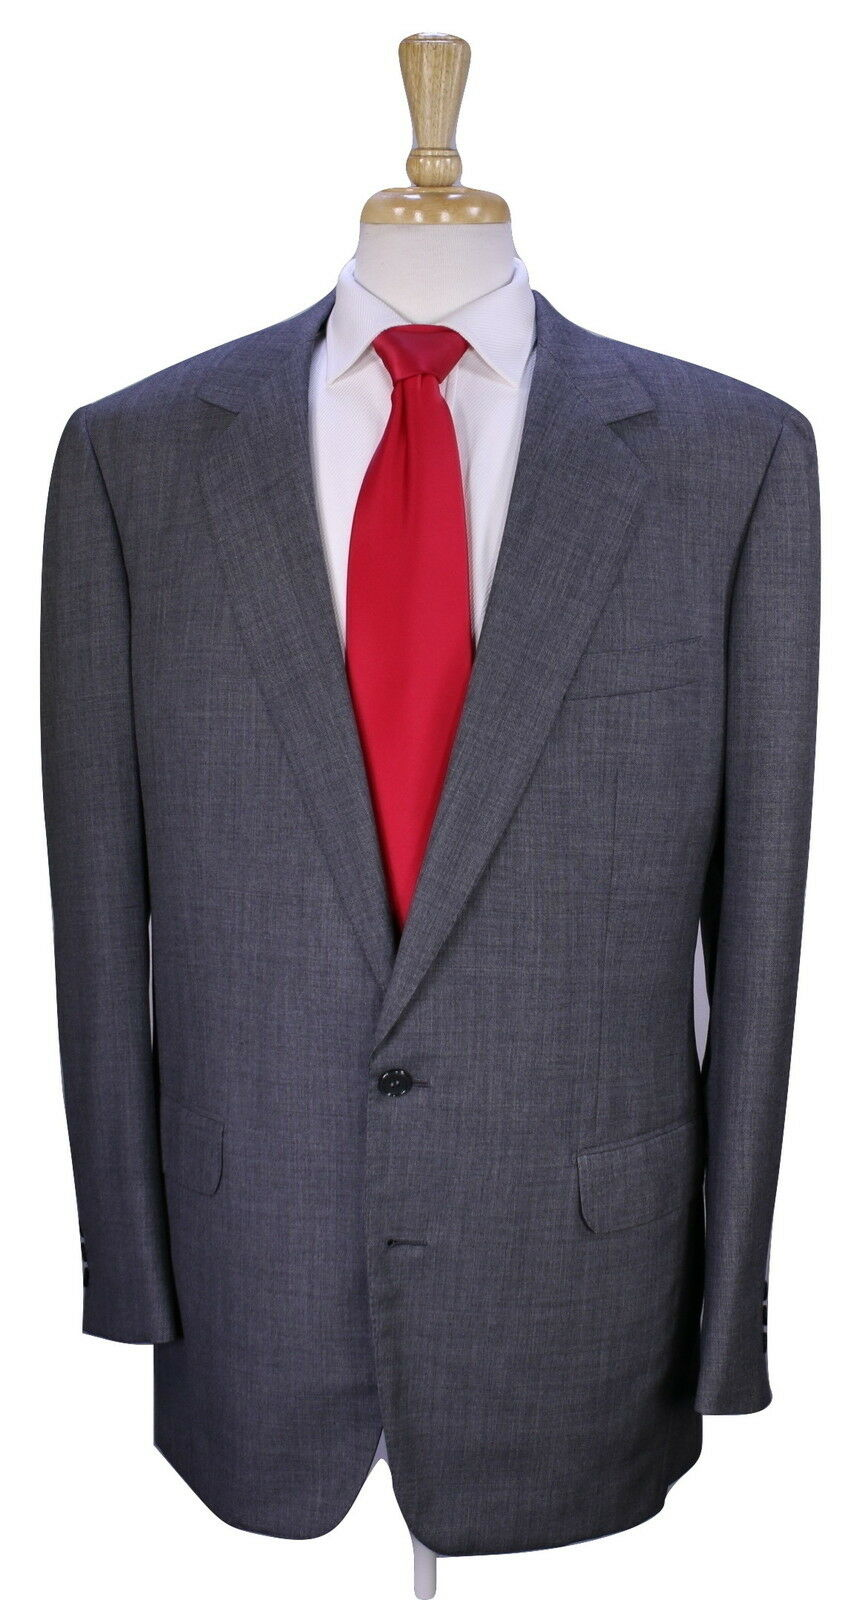 CHARVET  Paris Custom Made for BRUCE WILLIS grau Wven 2-Btn Wool Suit 42L